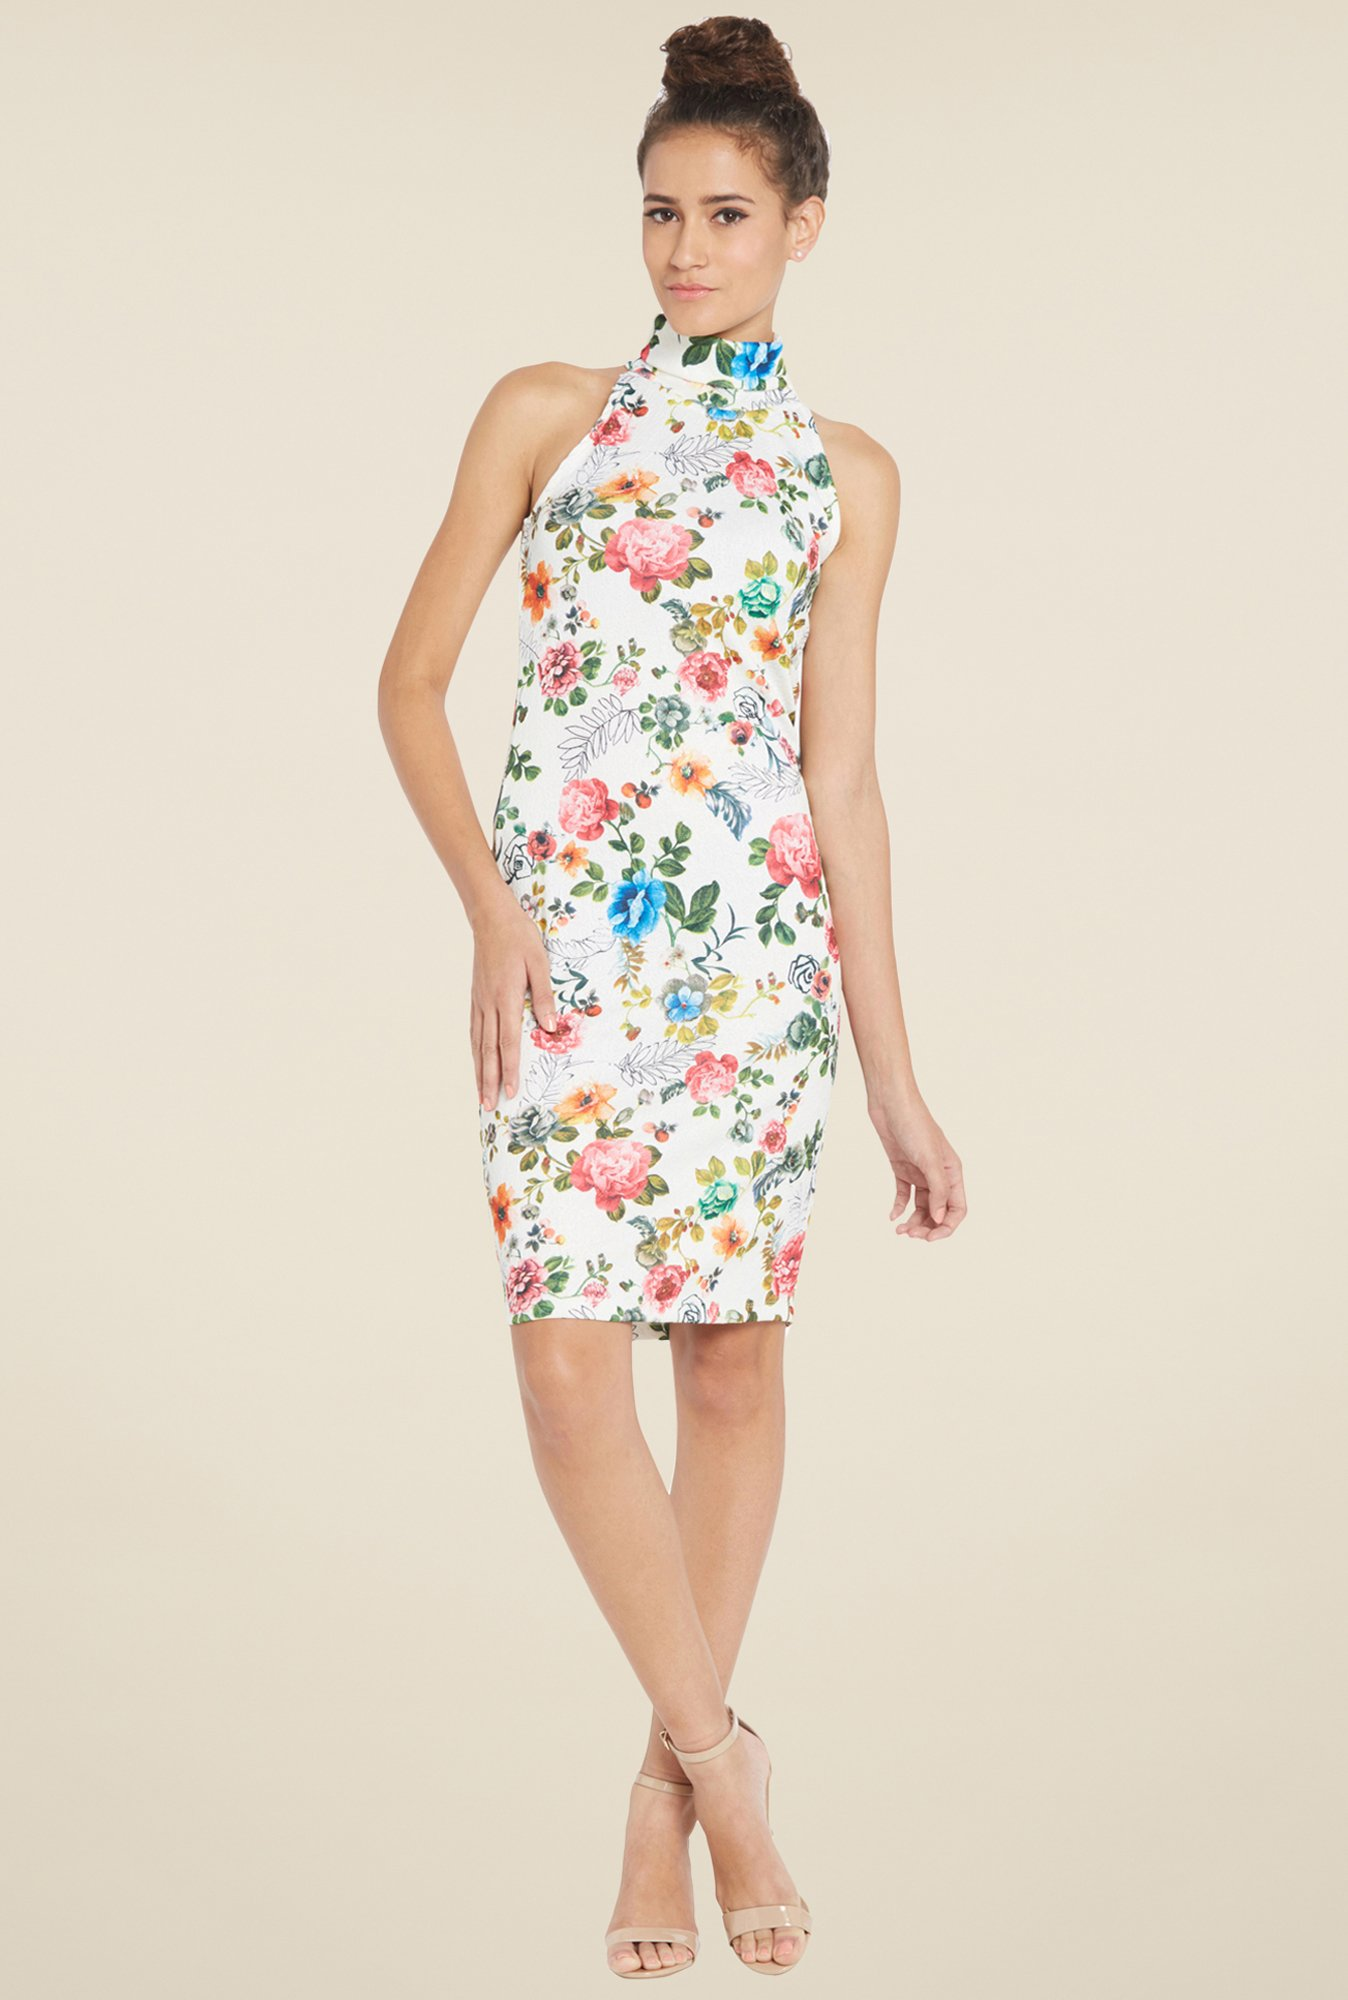 Globus White Floral Dress